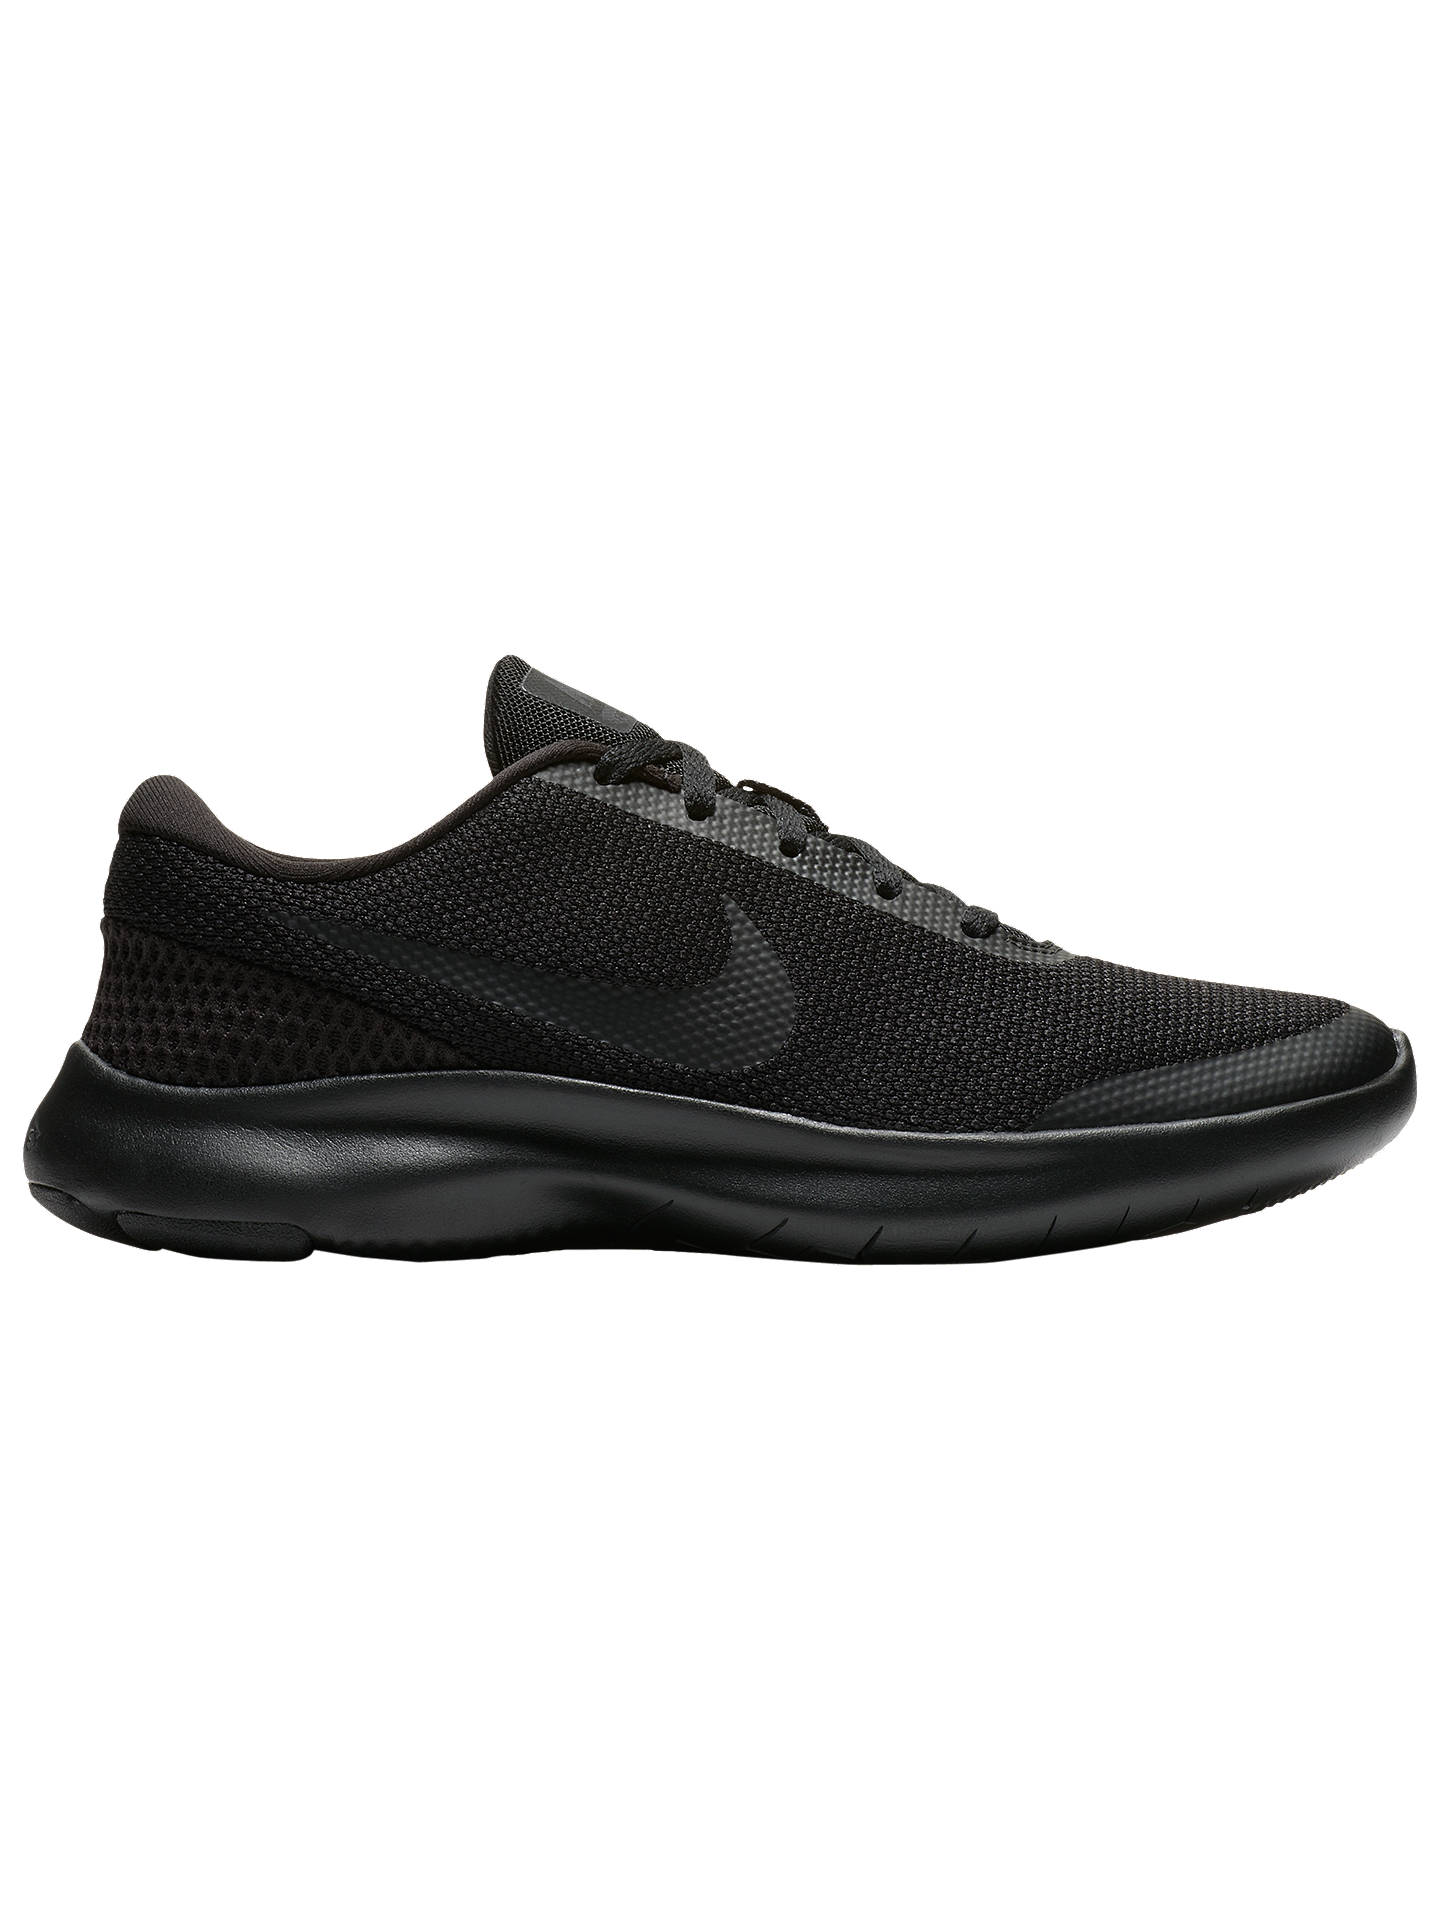 1640e1553c BuyNike Flex Experience RN 7 Women s Running Shoes